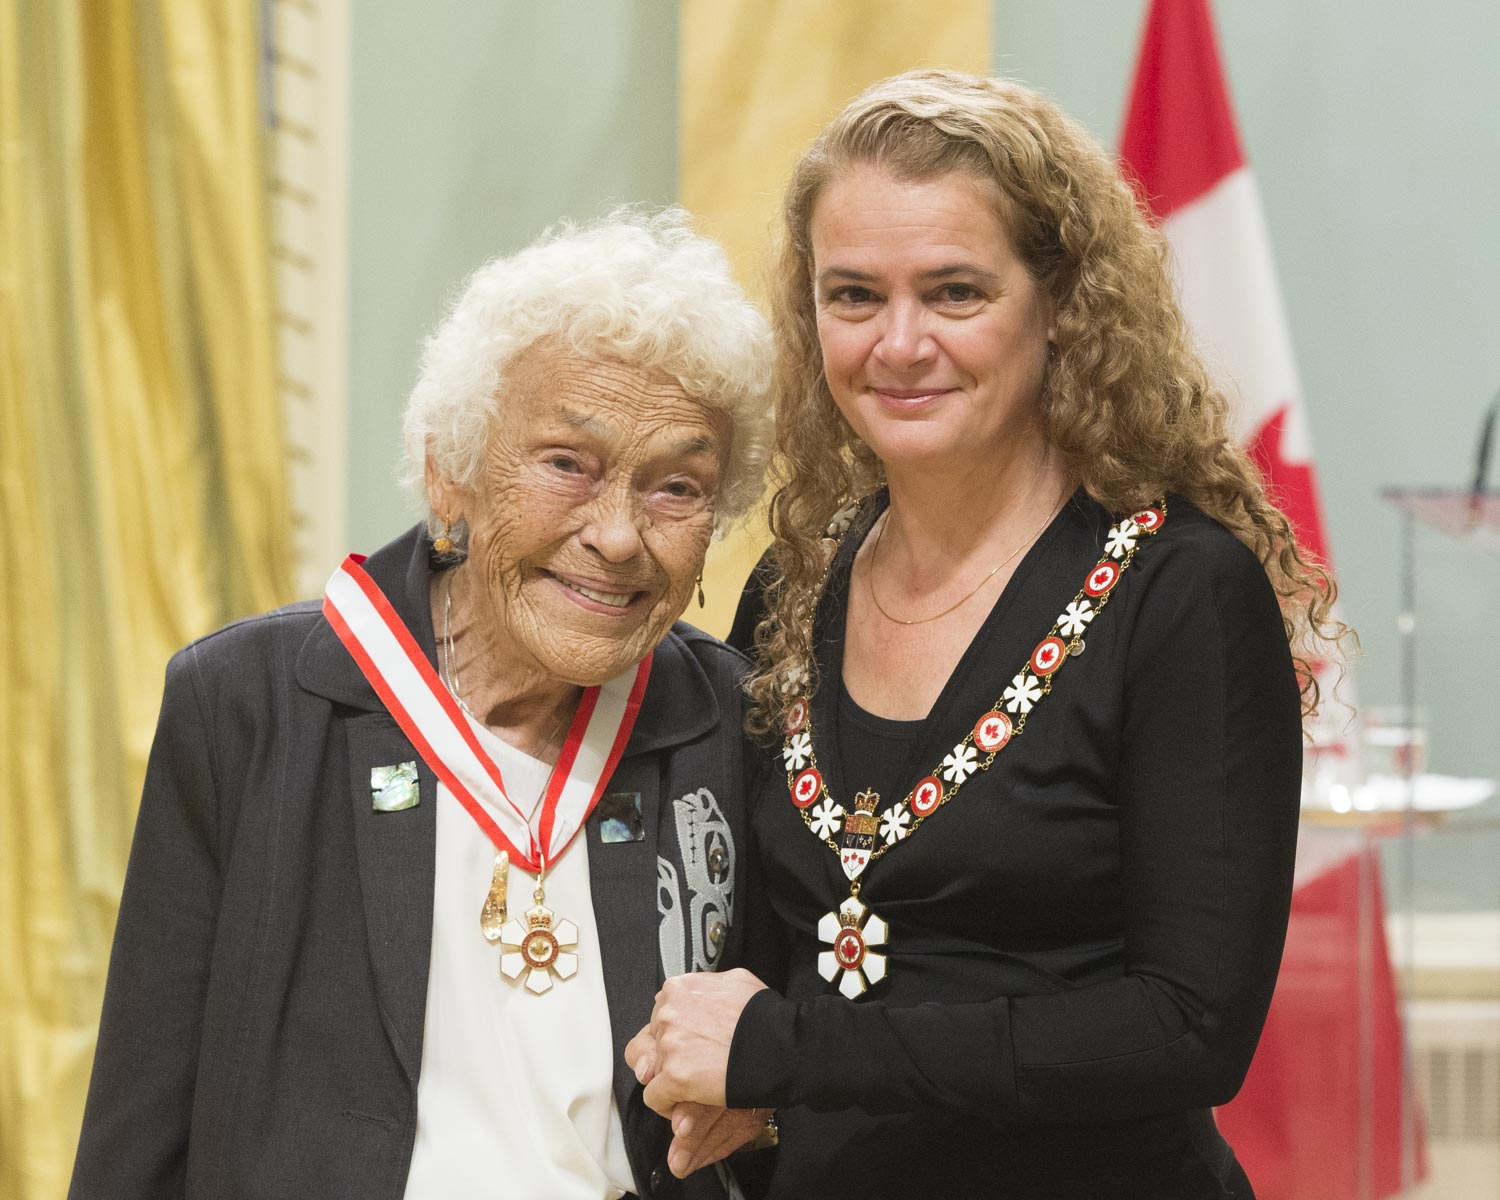 Gloria Cranmer Webster, O.C., has devoted her life to the preservation and celebration of Indigenous culture and traditions. She was the founding director and curator of the U'mista Cultural Centre in Alert Bay, which preserves and promotes the cultural heritage of the Kwakwaka'wakw and houses a collection repatriated from the Canadian Museum of History. A proud 'Namgis, she has lent her expertise in anthropology and museology to numerous exhibits within Canada and abroad. Through her wisdom and determination, she has helped foster greater public knowledge of her heritage.